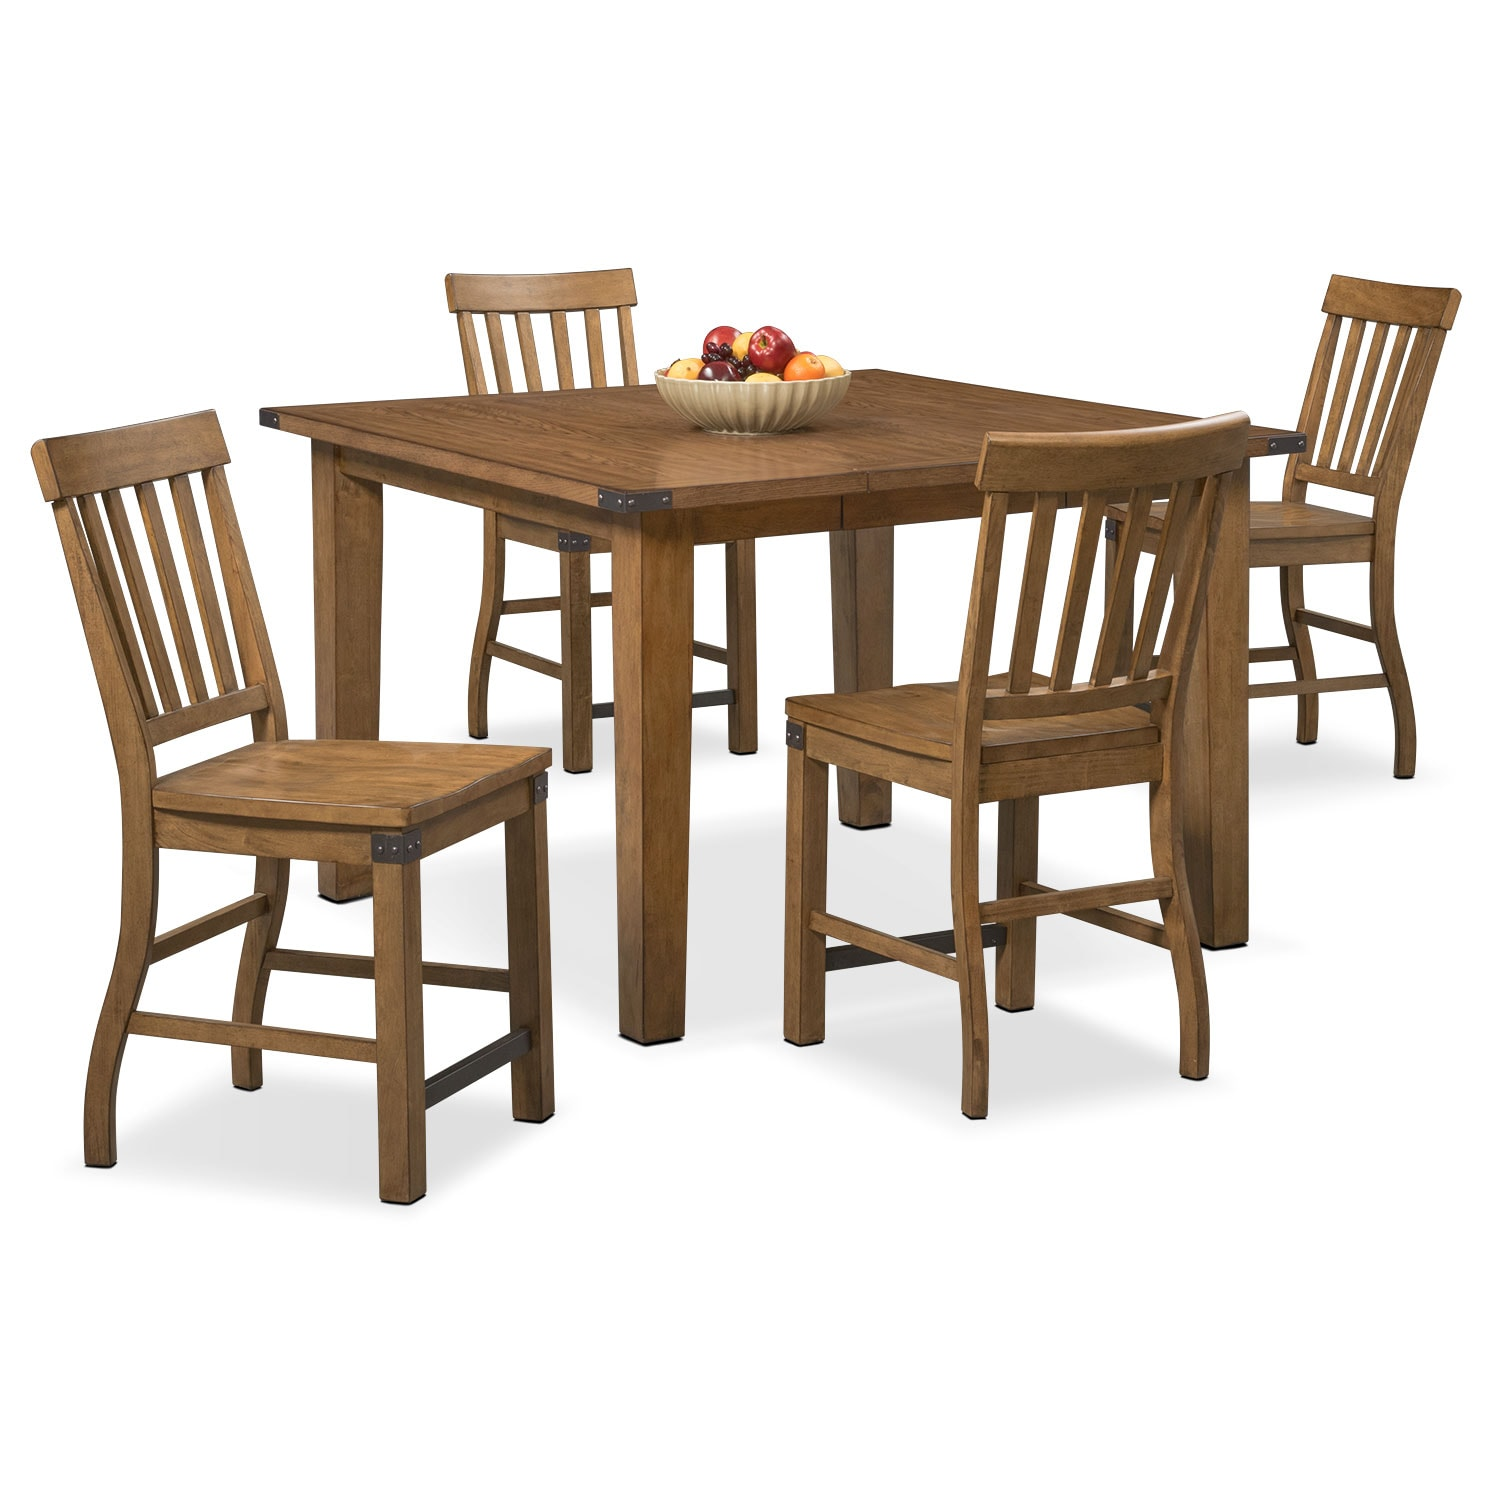 Dining Room Furniture - Salem Counter-Height Table and 4 Chairs - Pecan